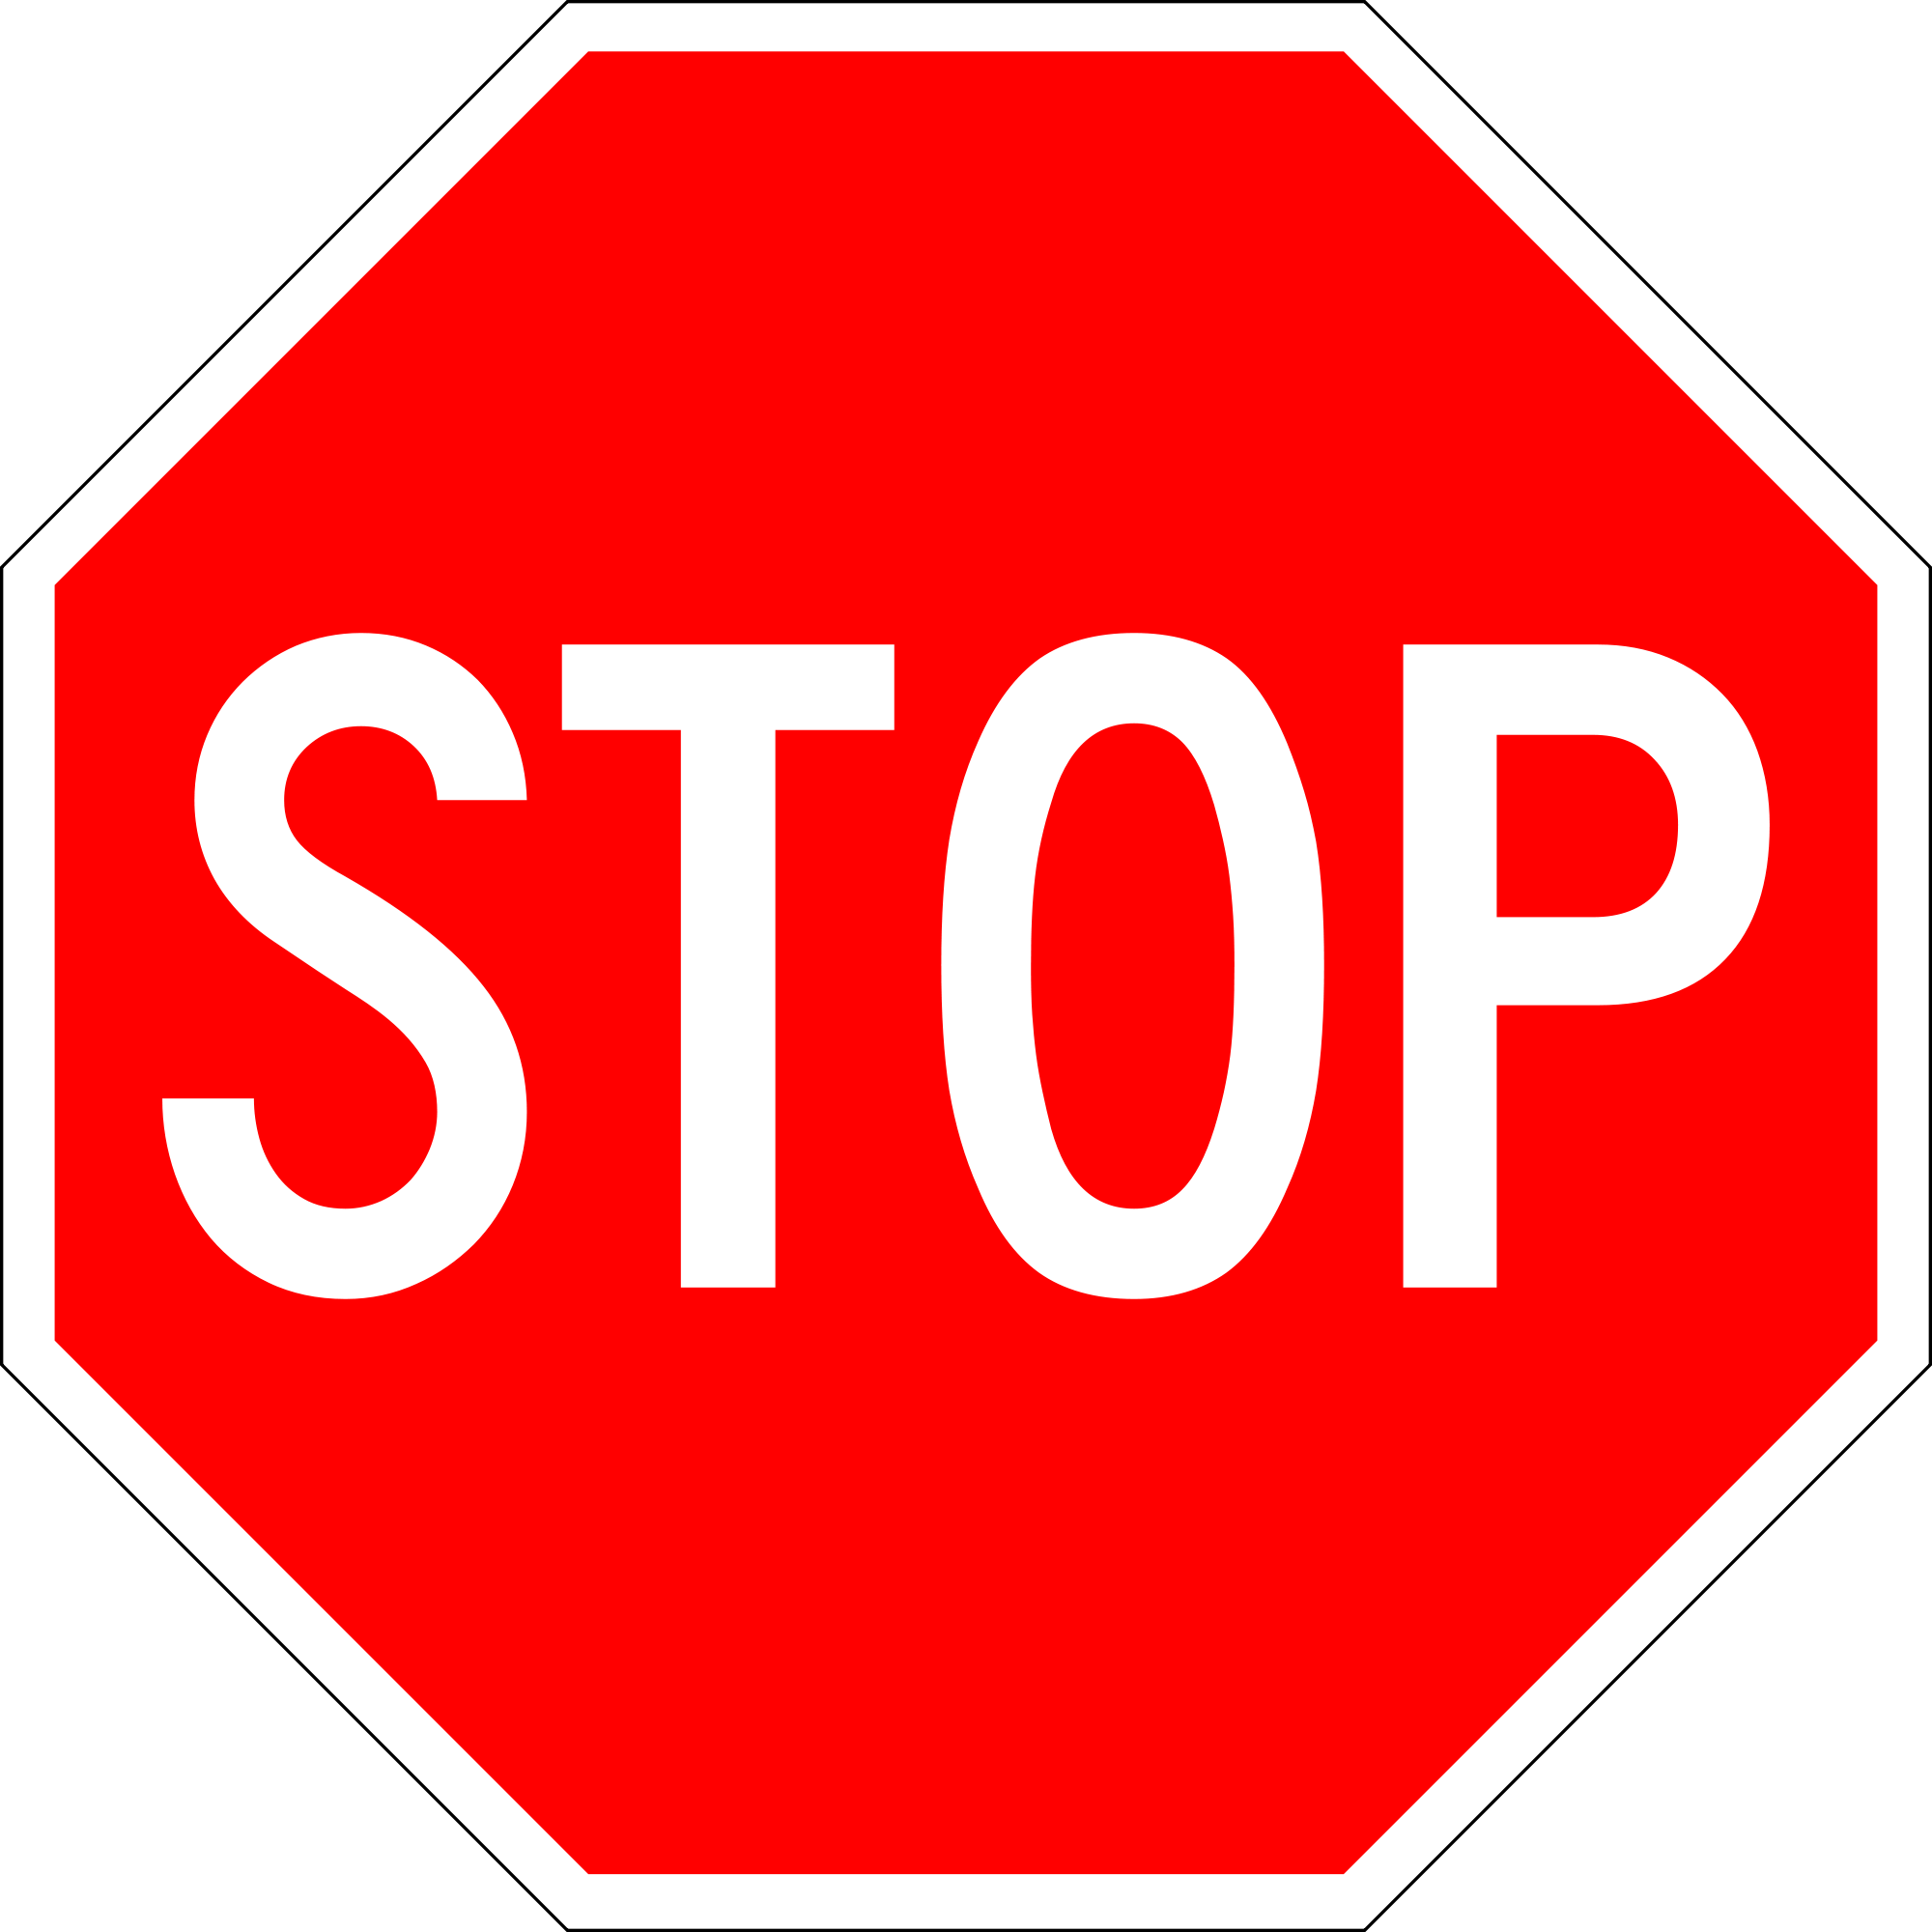 Png Of Stop Sign - Sign stop PNG images free download